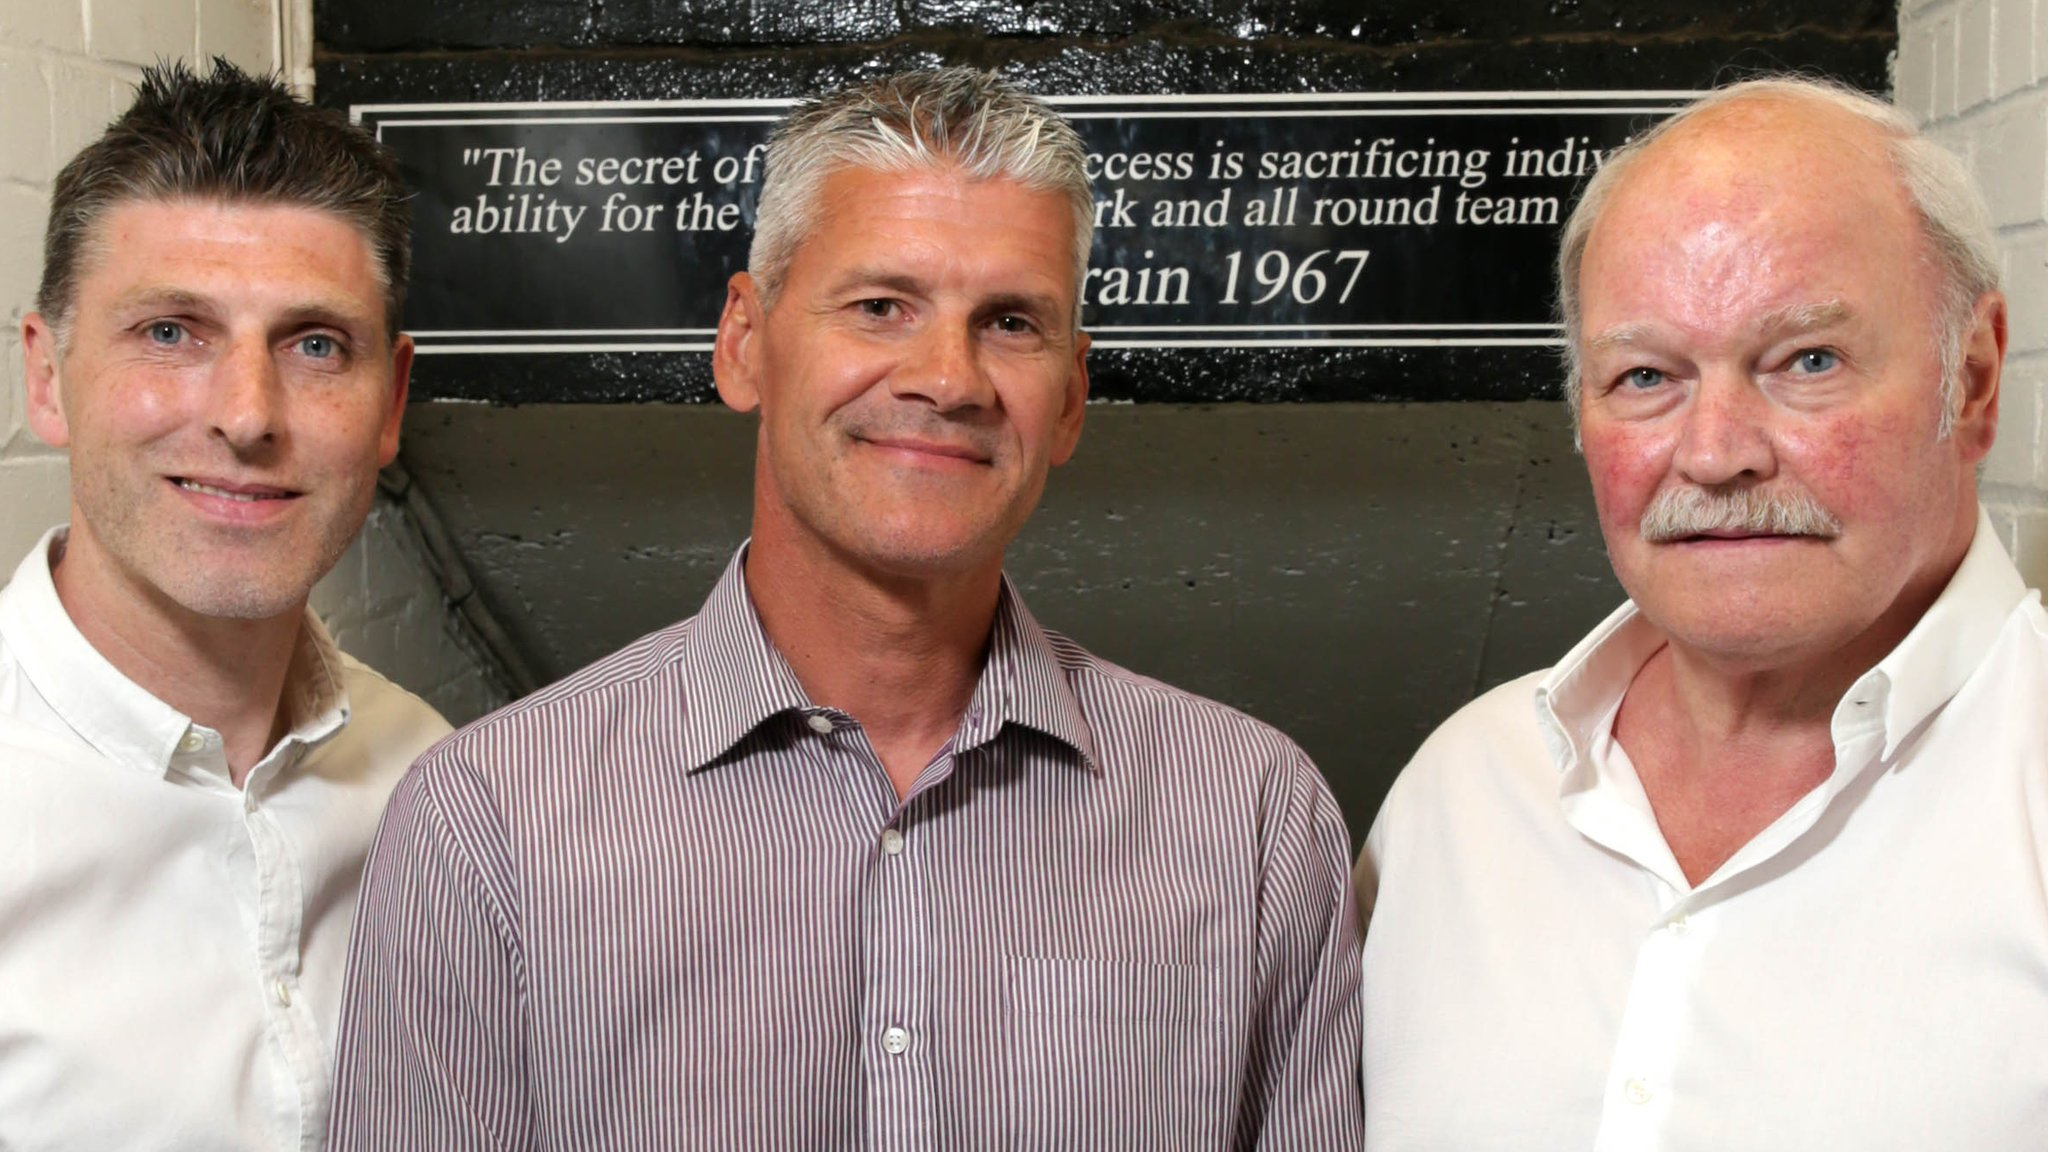 McFall to remain Glentoran manager as Smyth and Leeman join coaching team